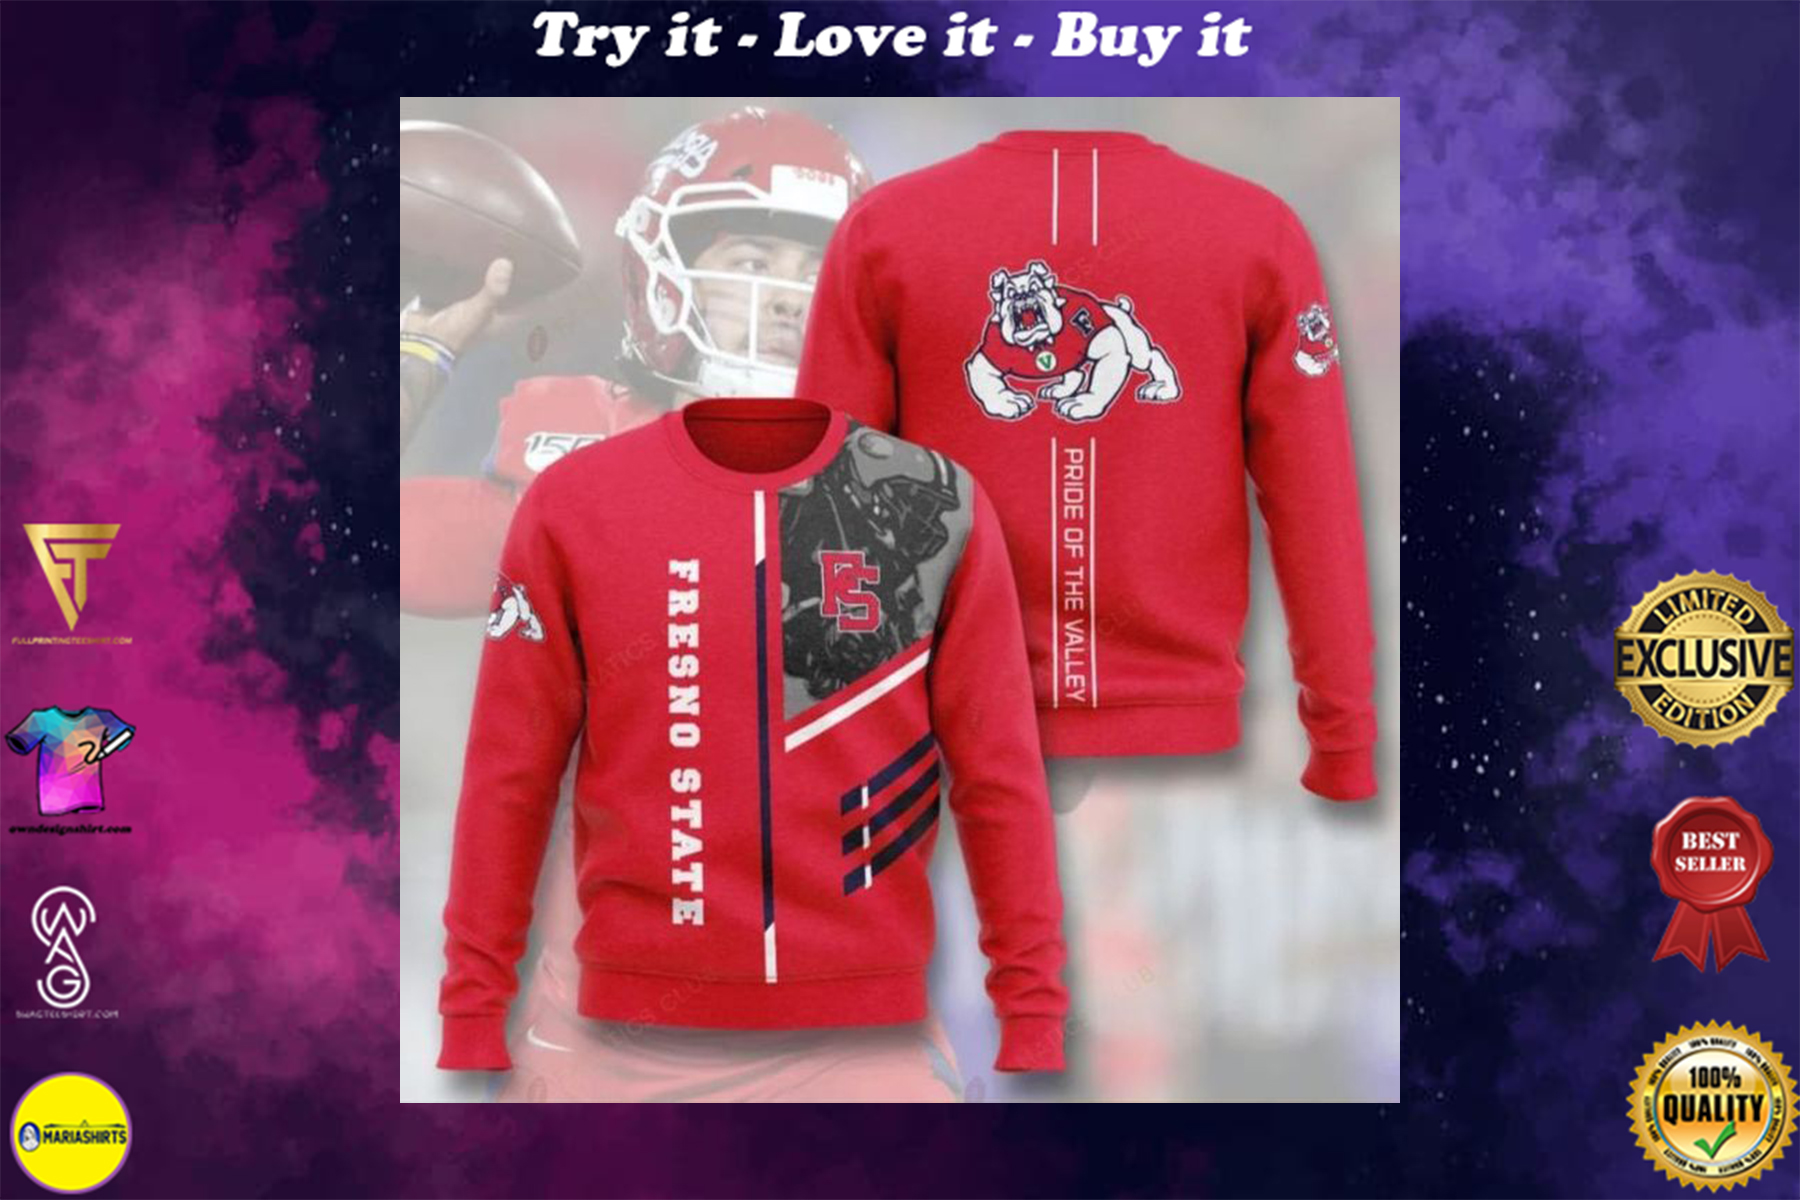 [highest selling] fresno state bulldogs football pride of the valley full printing ugly sweater - maria